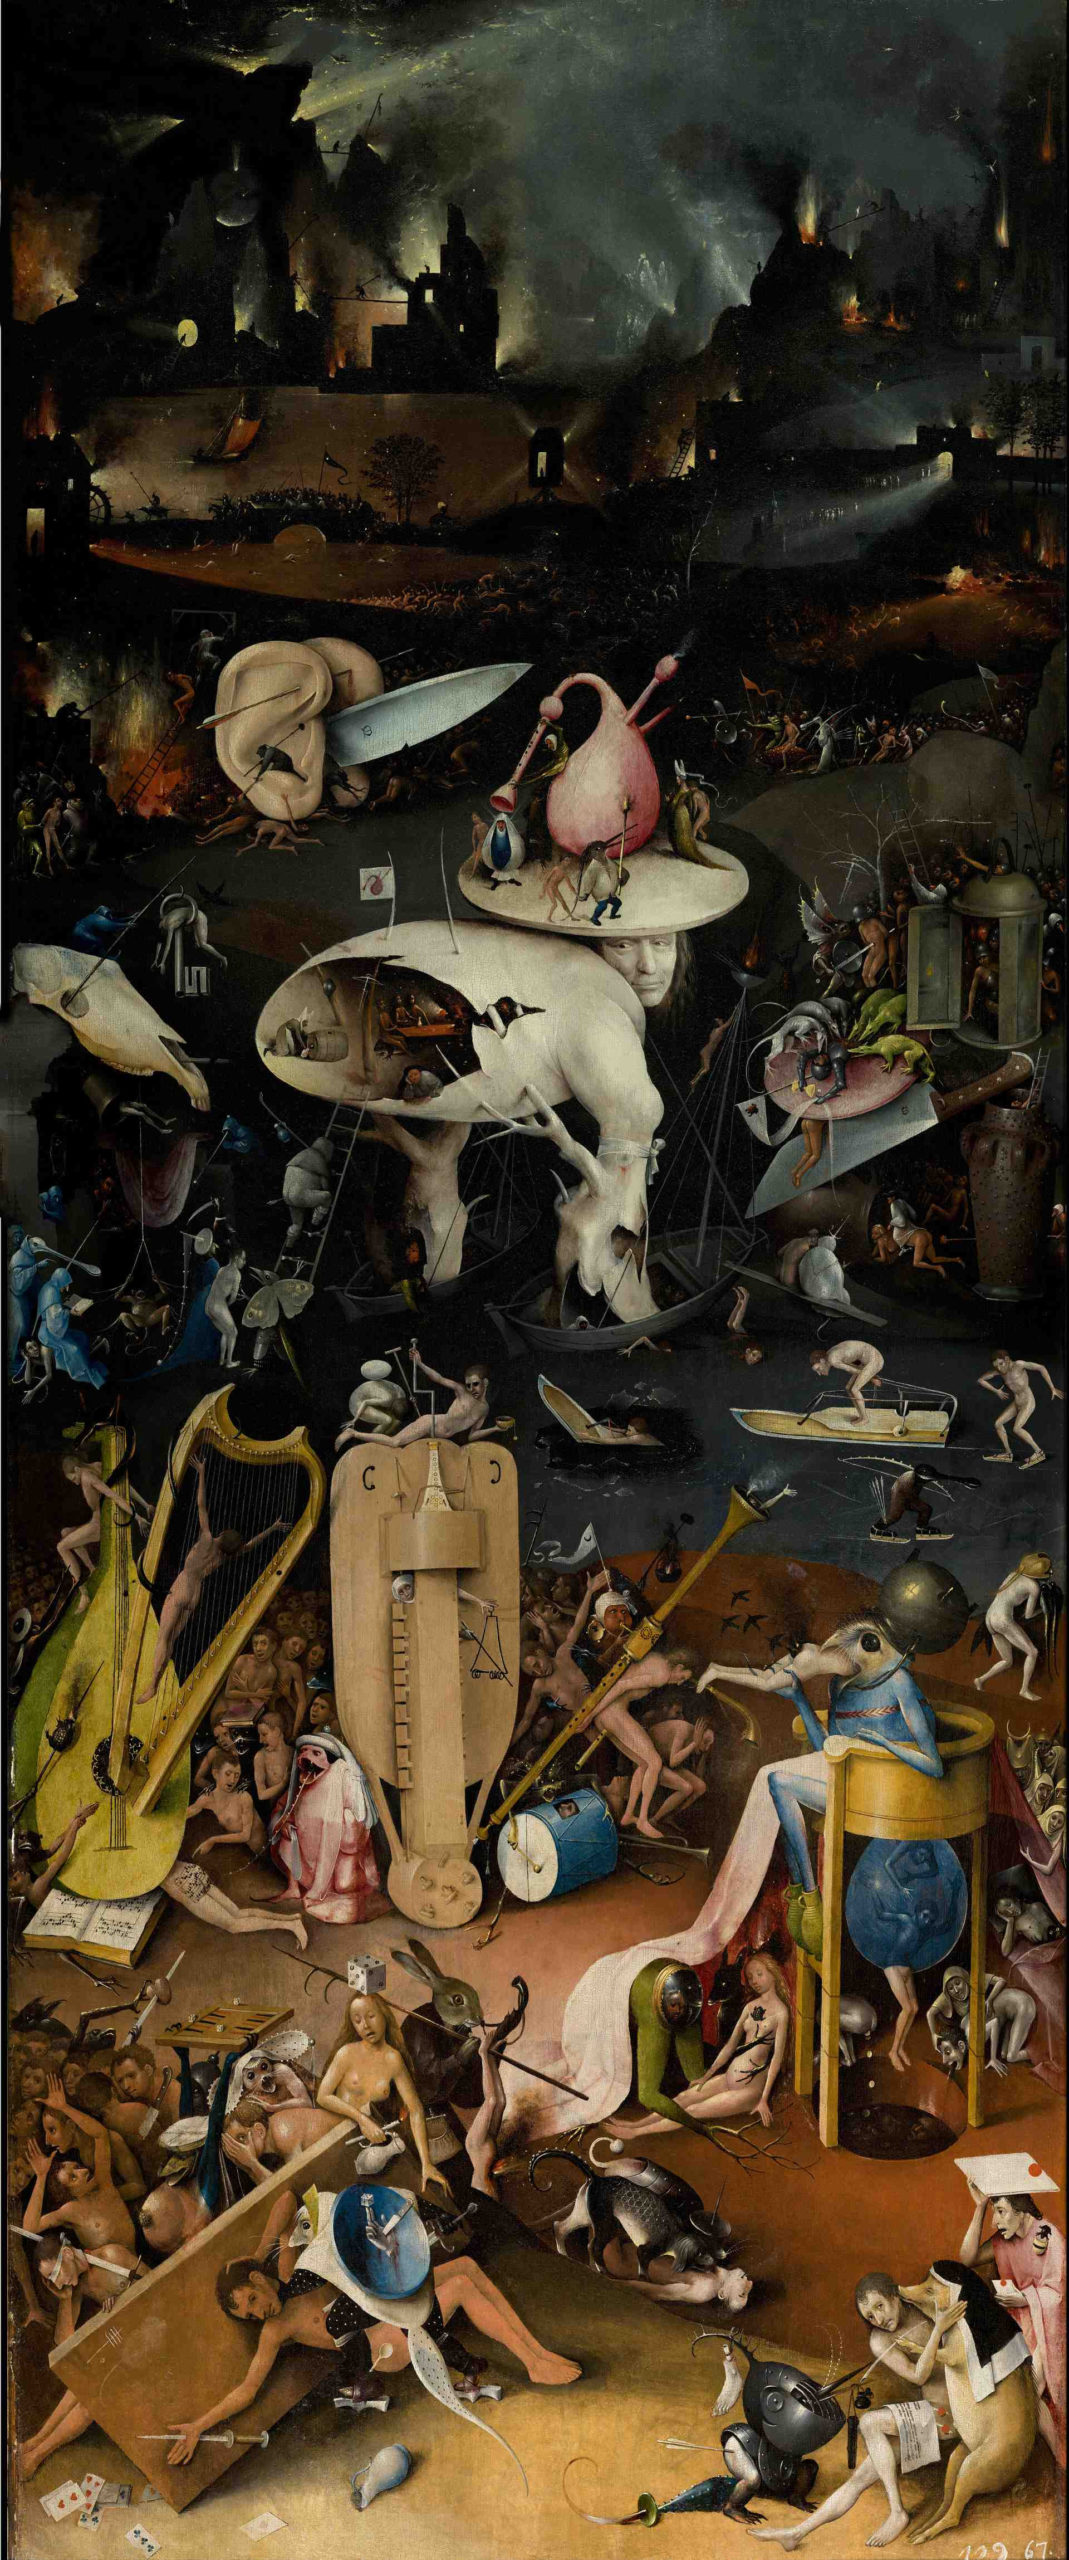 Bosch's The Garden of Earthly Delights (1490-1510)